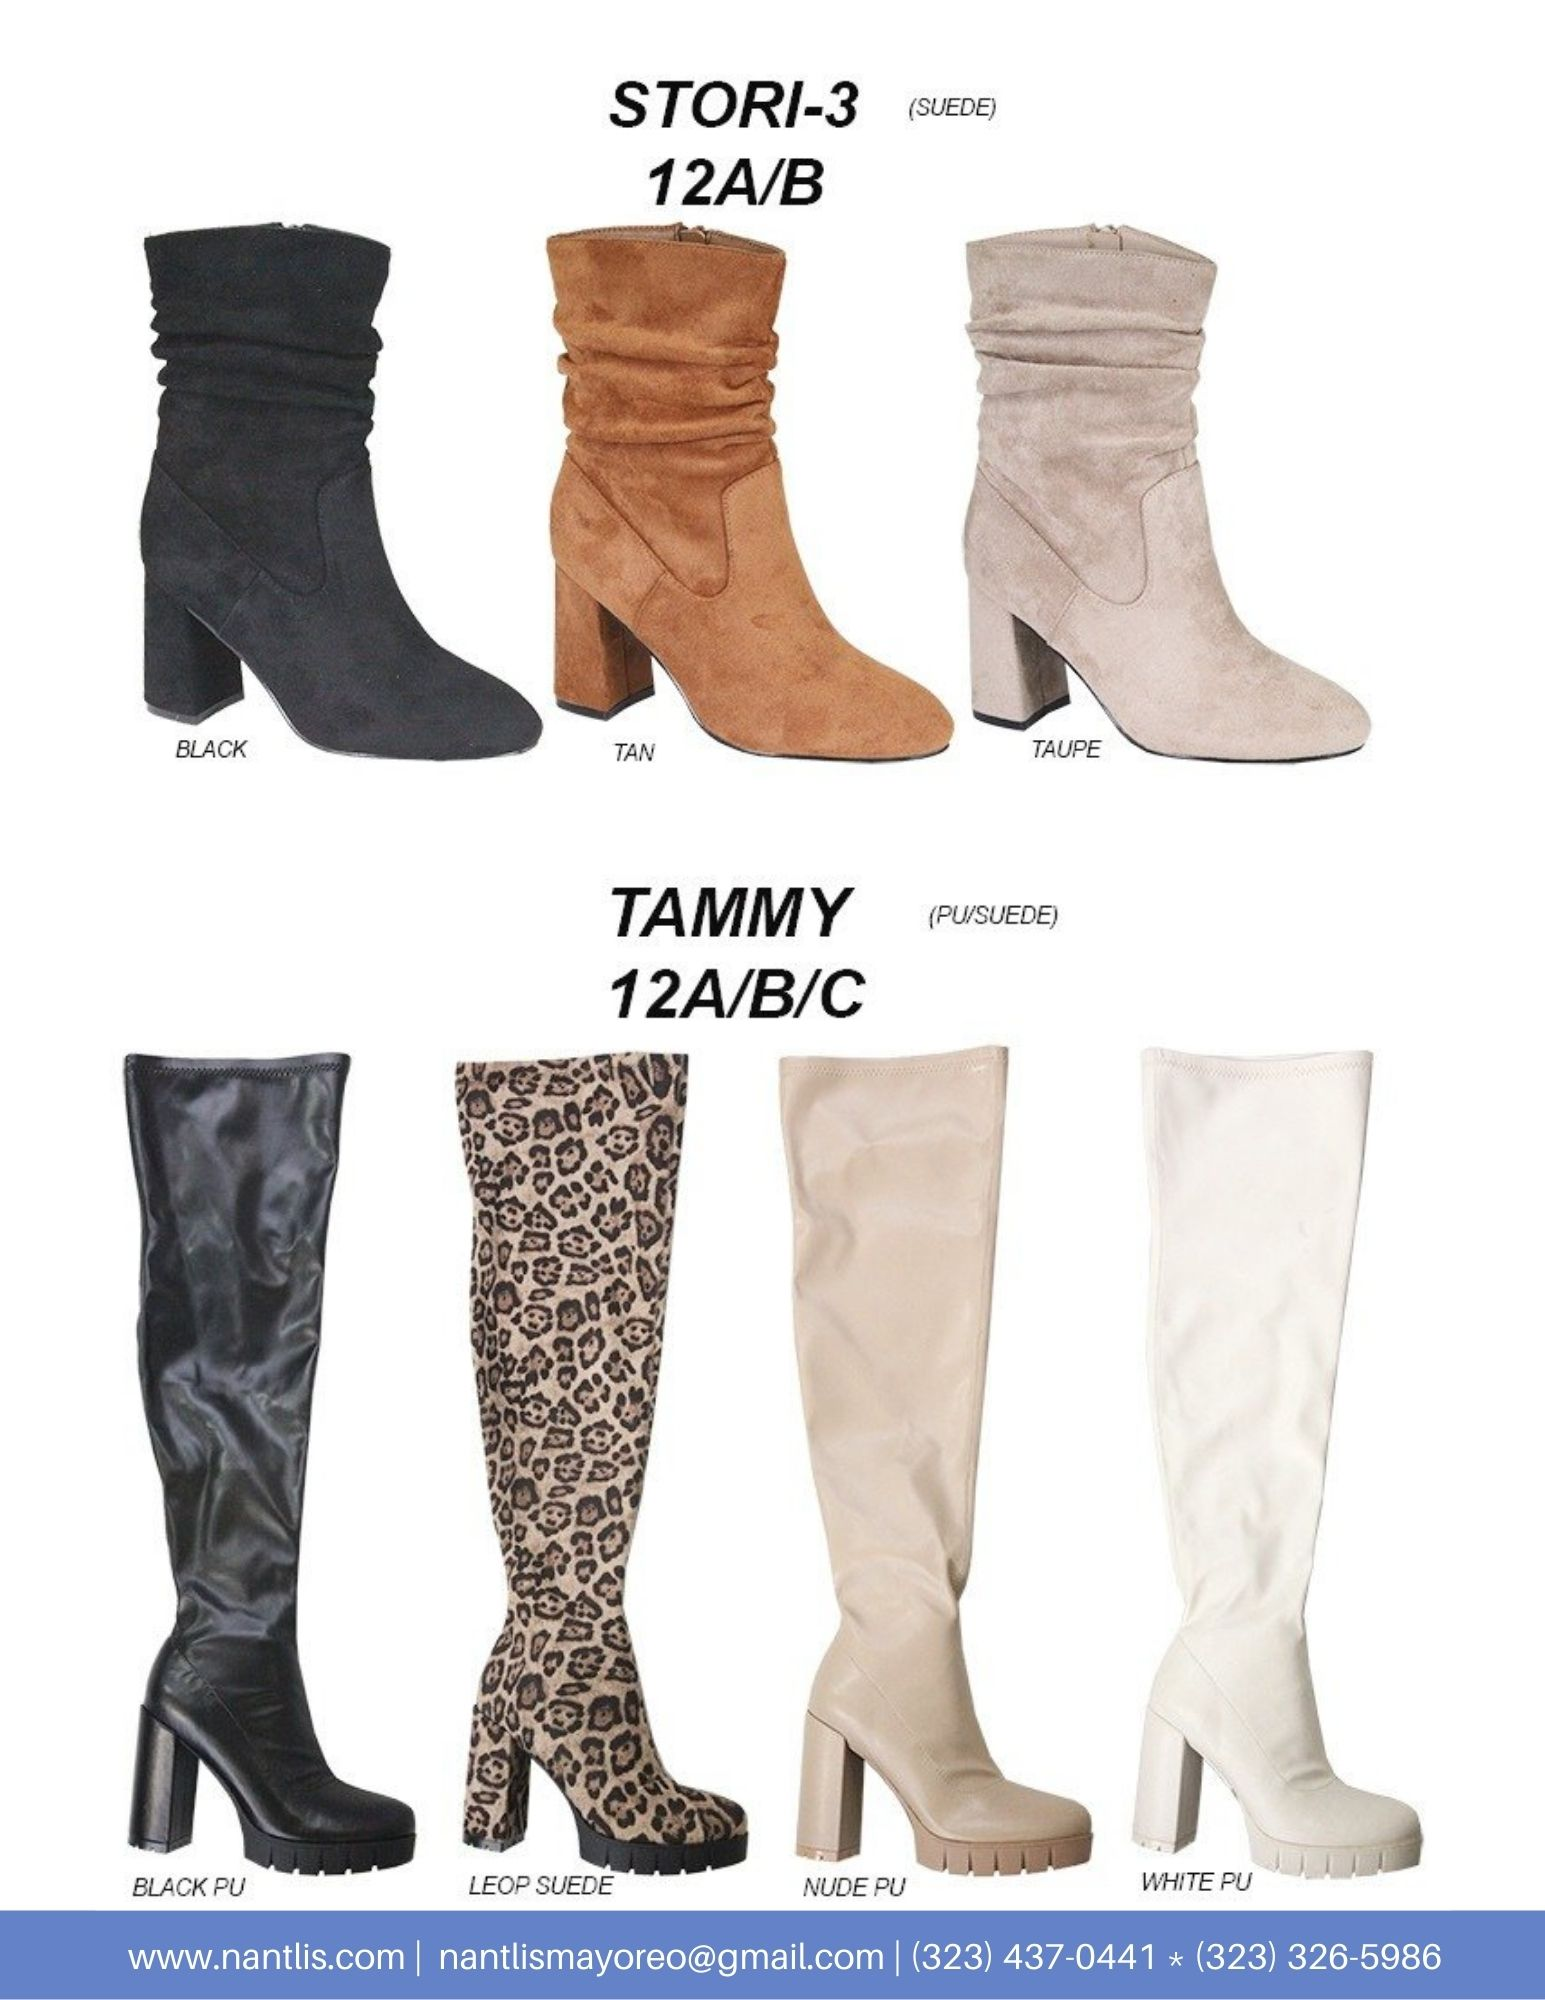 Nantlis Vol AN22 Botas Mujer mayoreo Catalogo Wholesale boots for women page 11